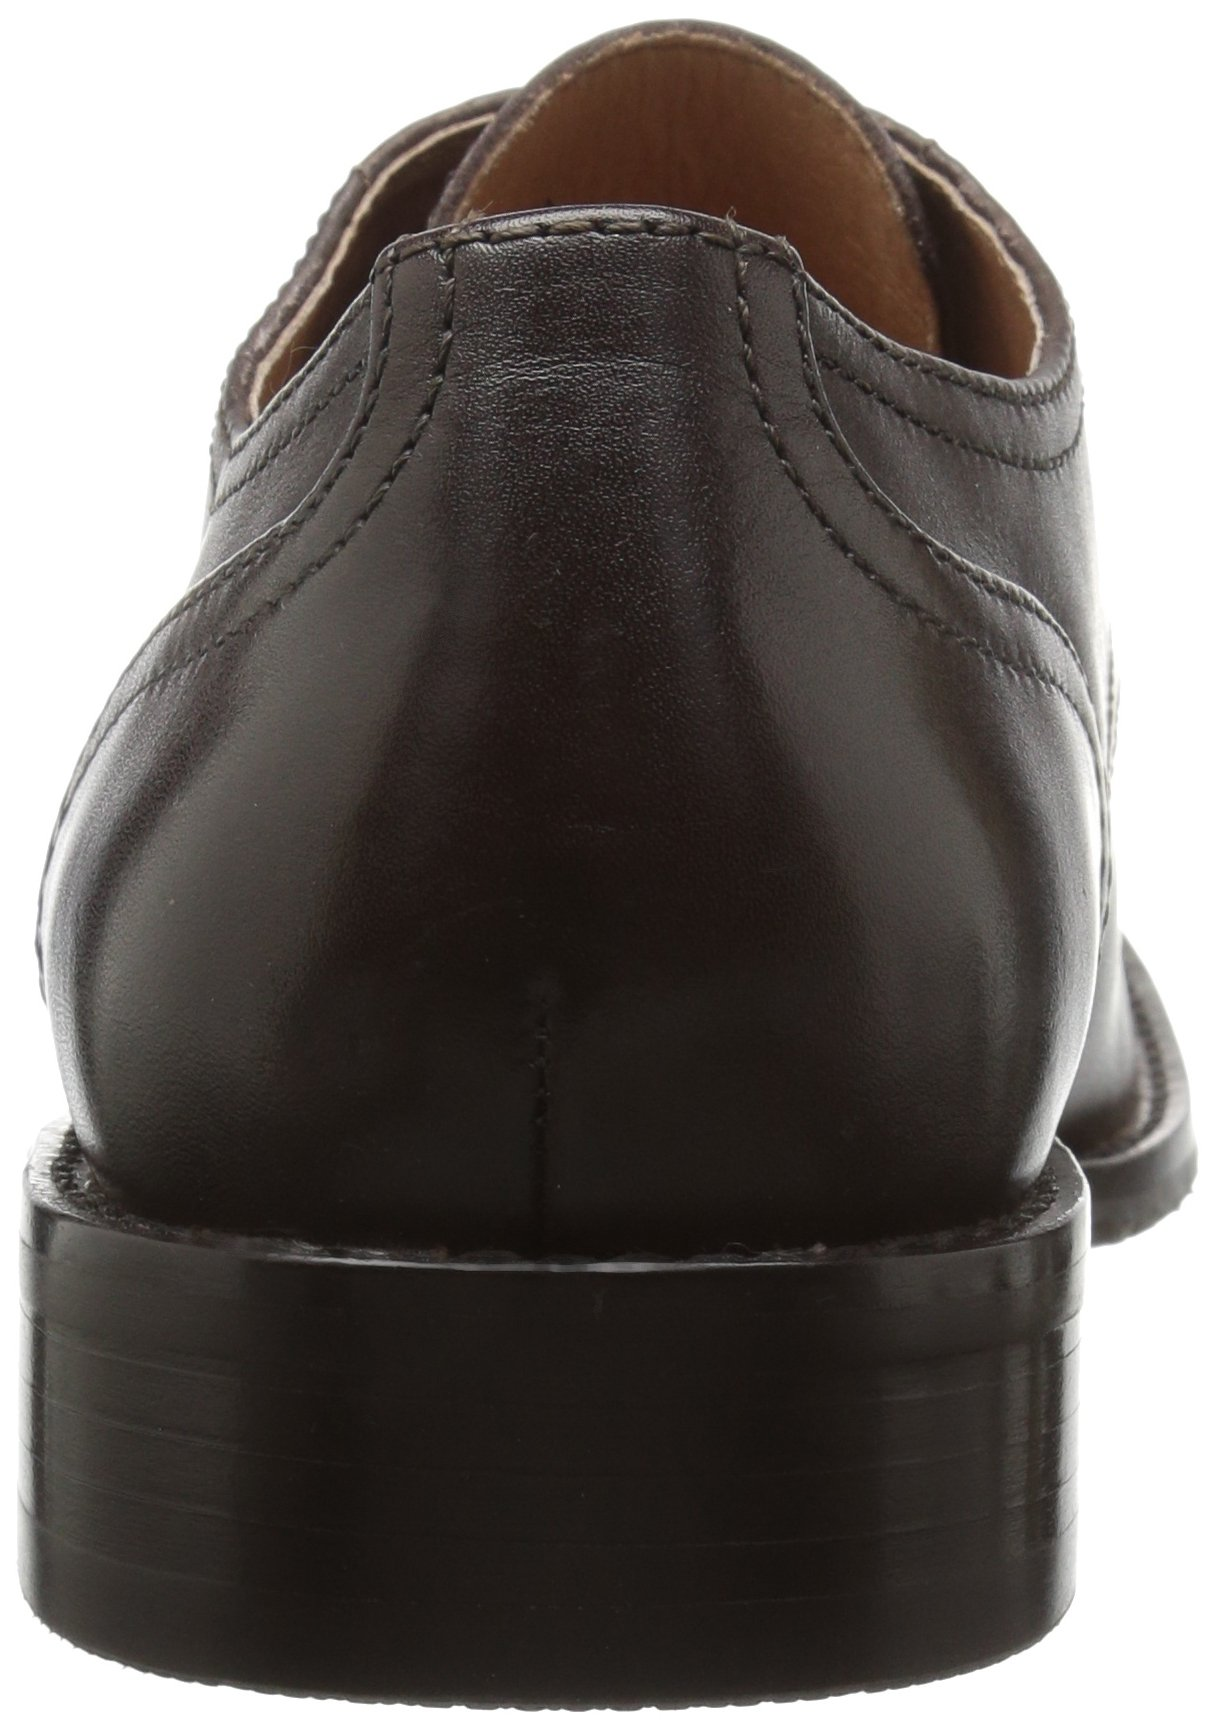 206 Collective Men's Concord Plain-Toe Oxford Shoe, Chocolate Brown, 11 D US by 206 Collective (Image #2)